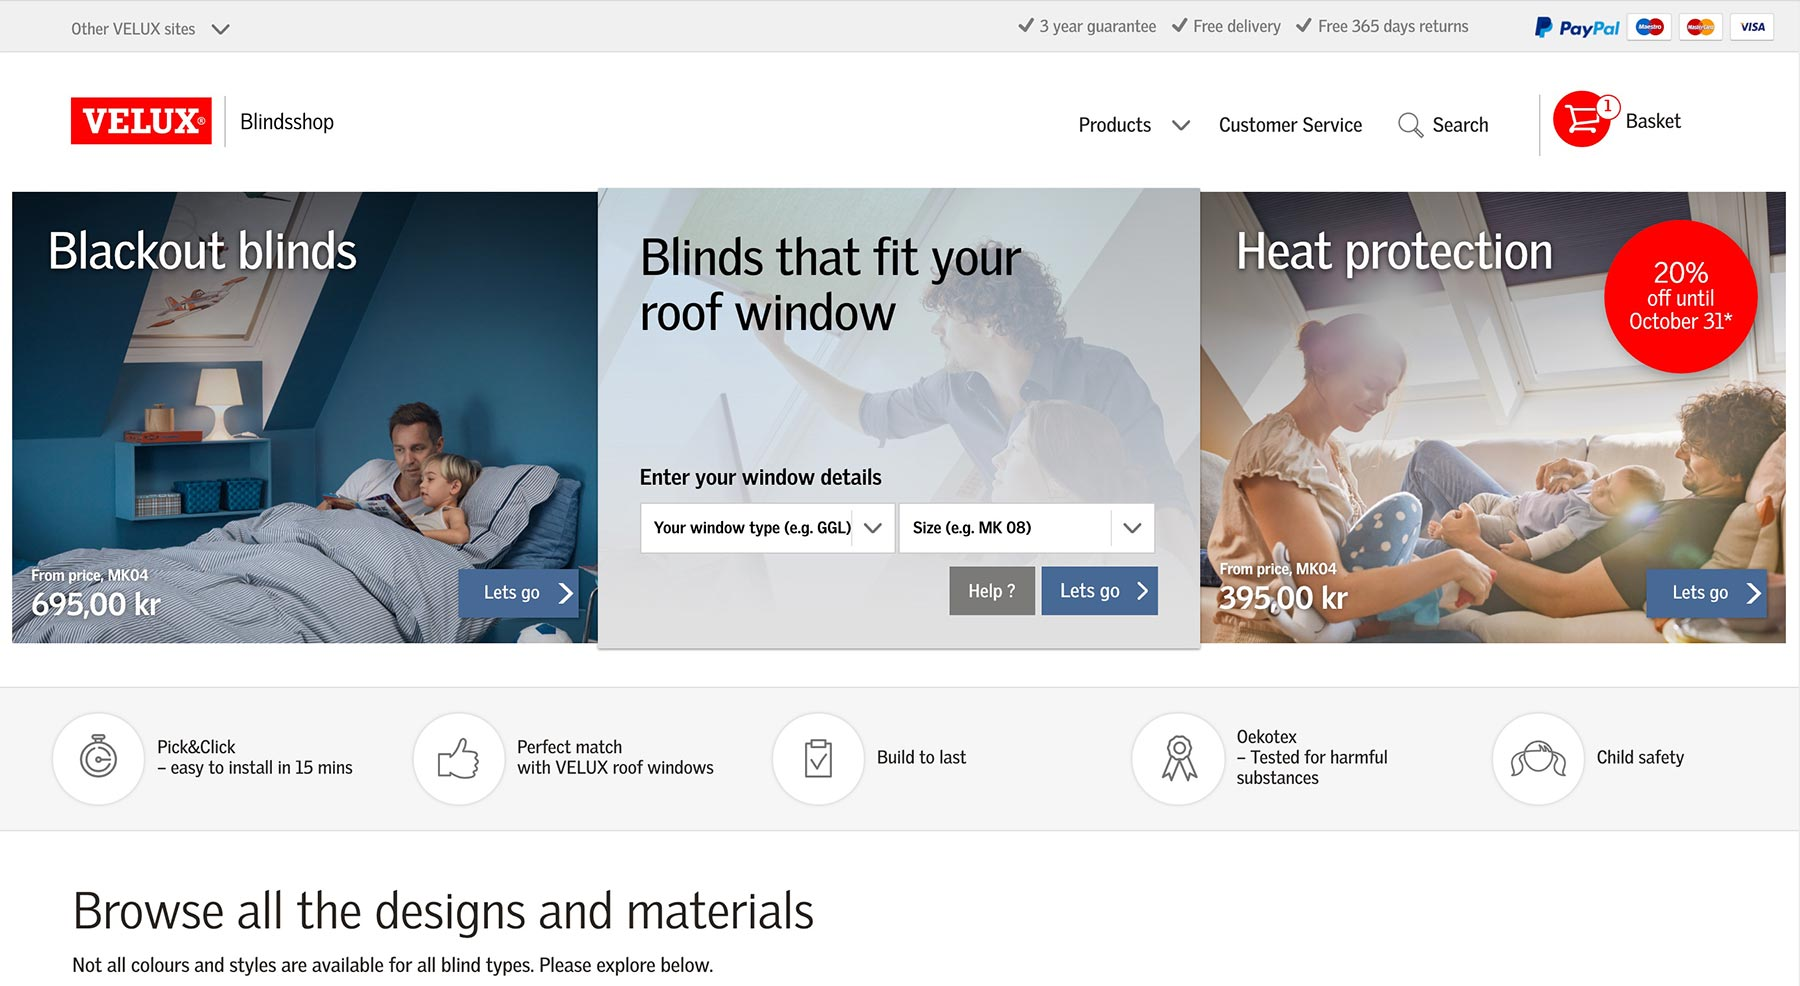 The VELUX Blind shop front page